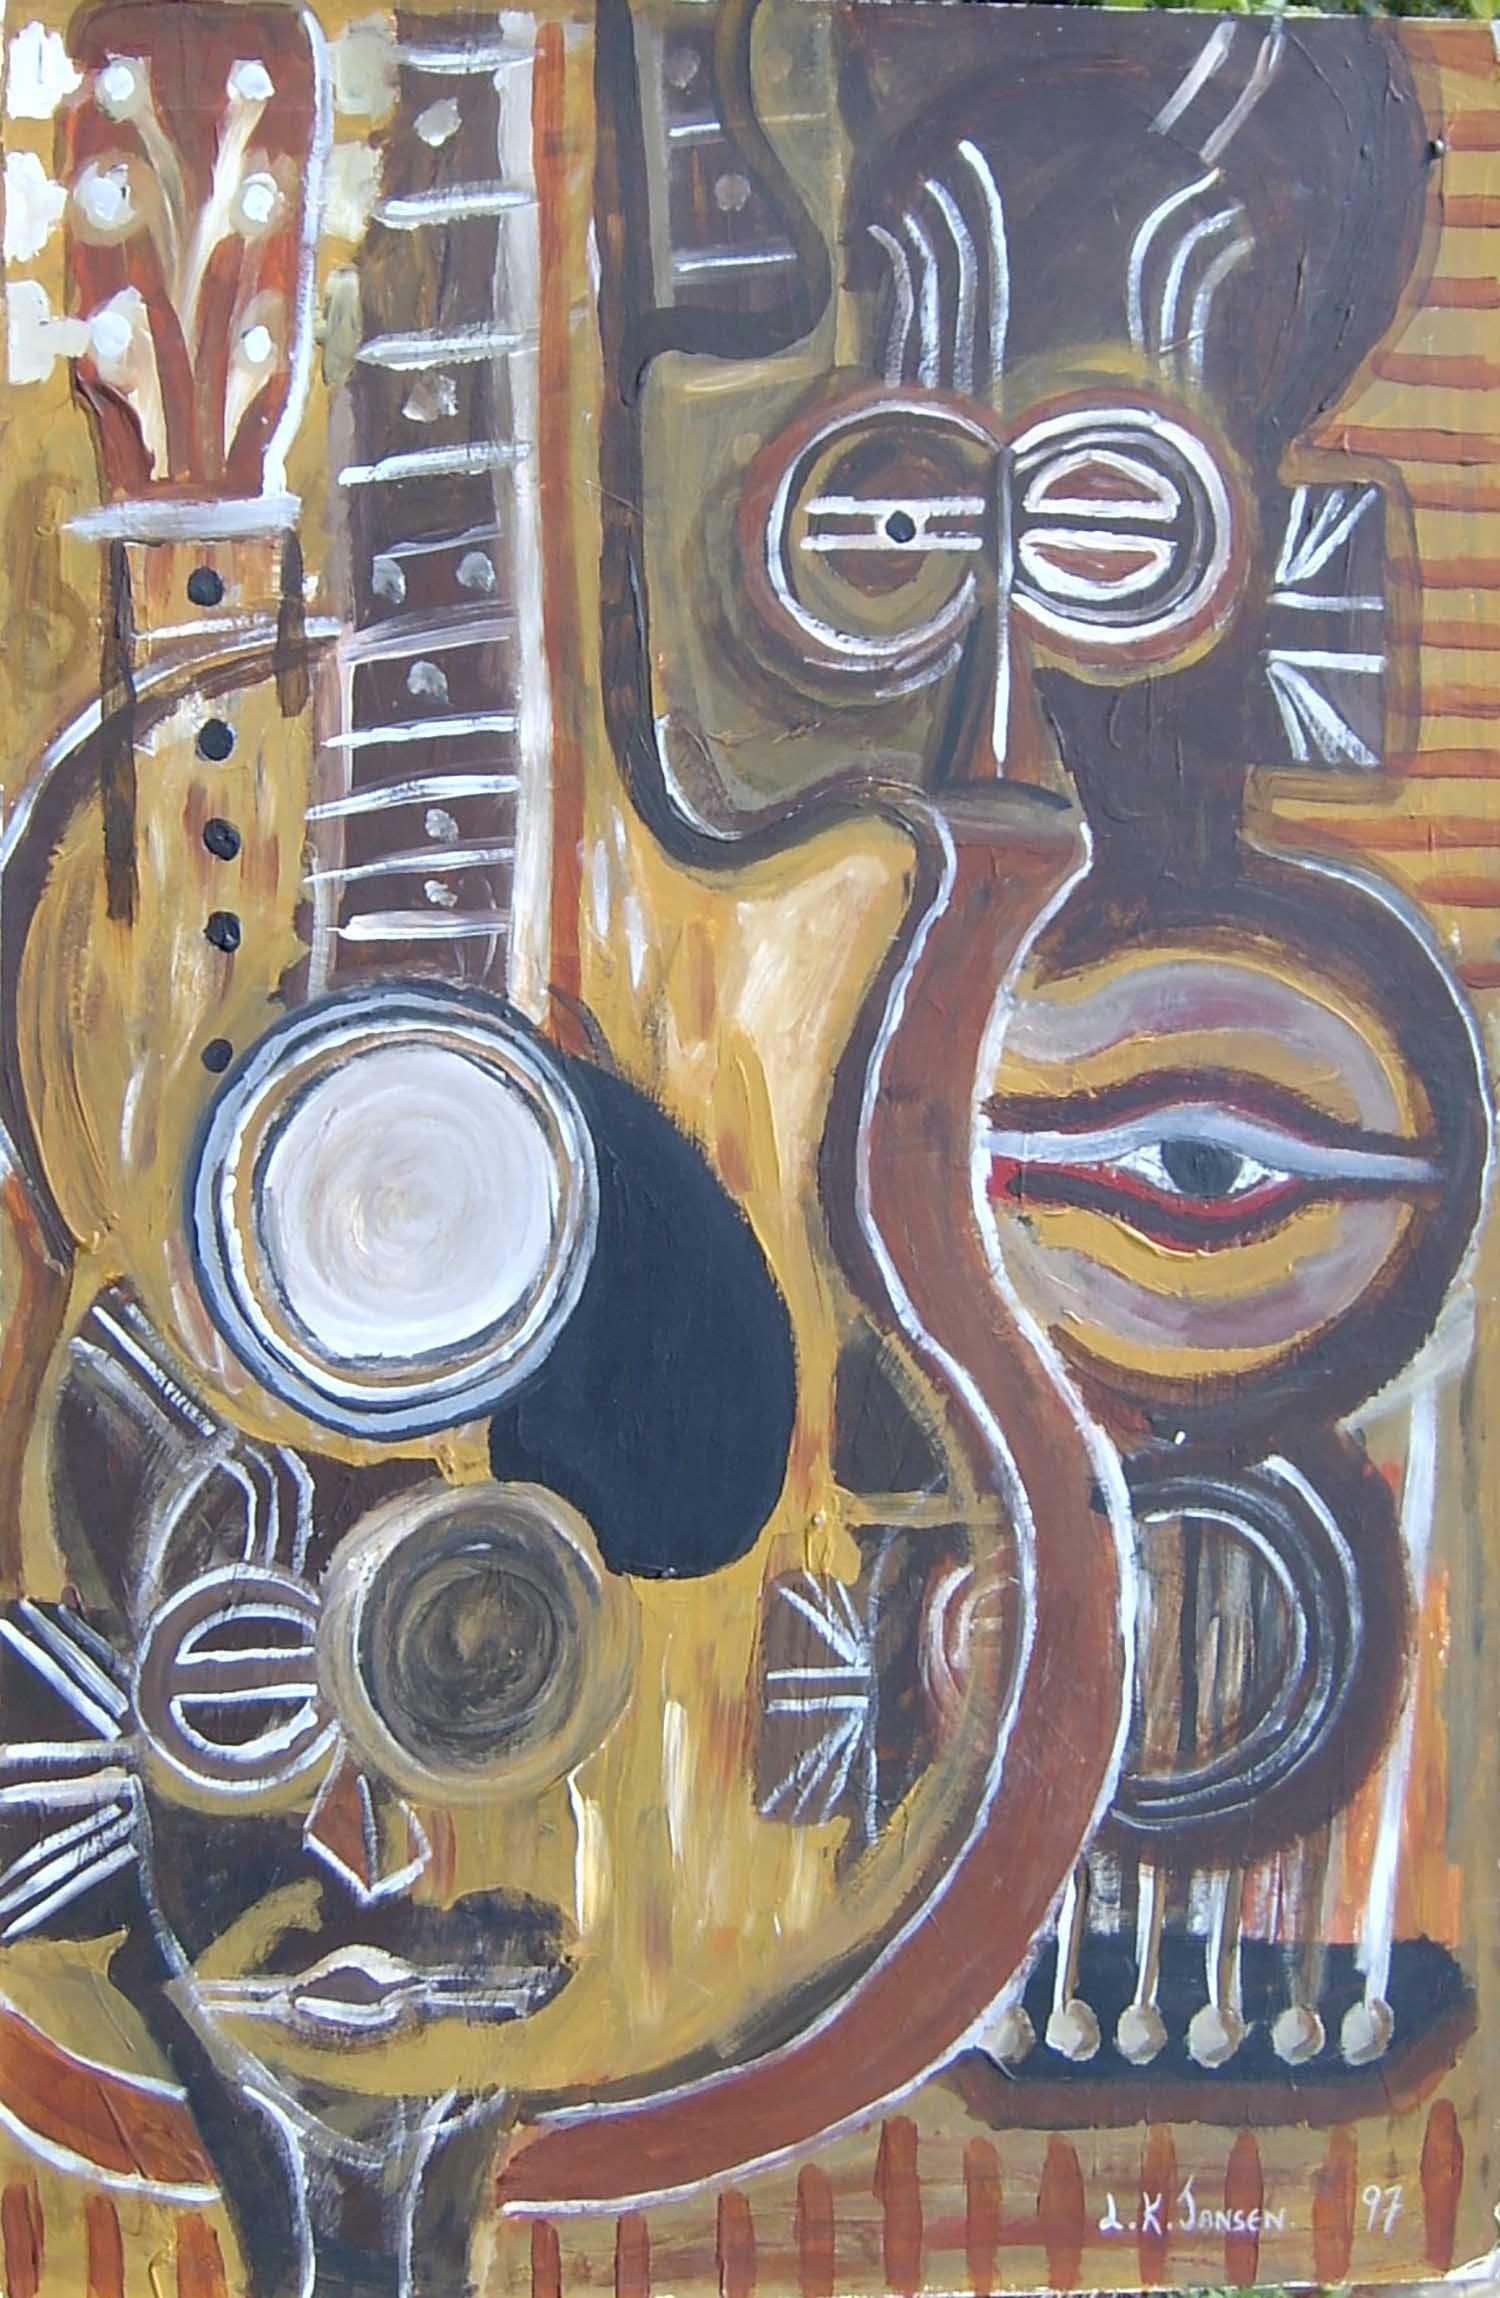 Guitar and Mask. acrylic on card. 90x60cm.1997.1500ppi.4web